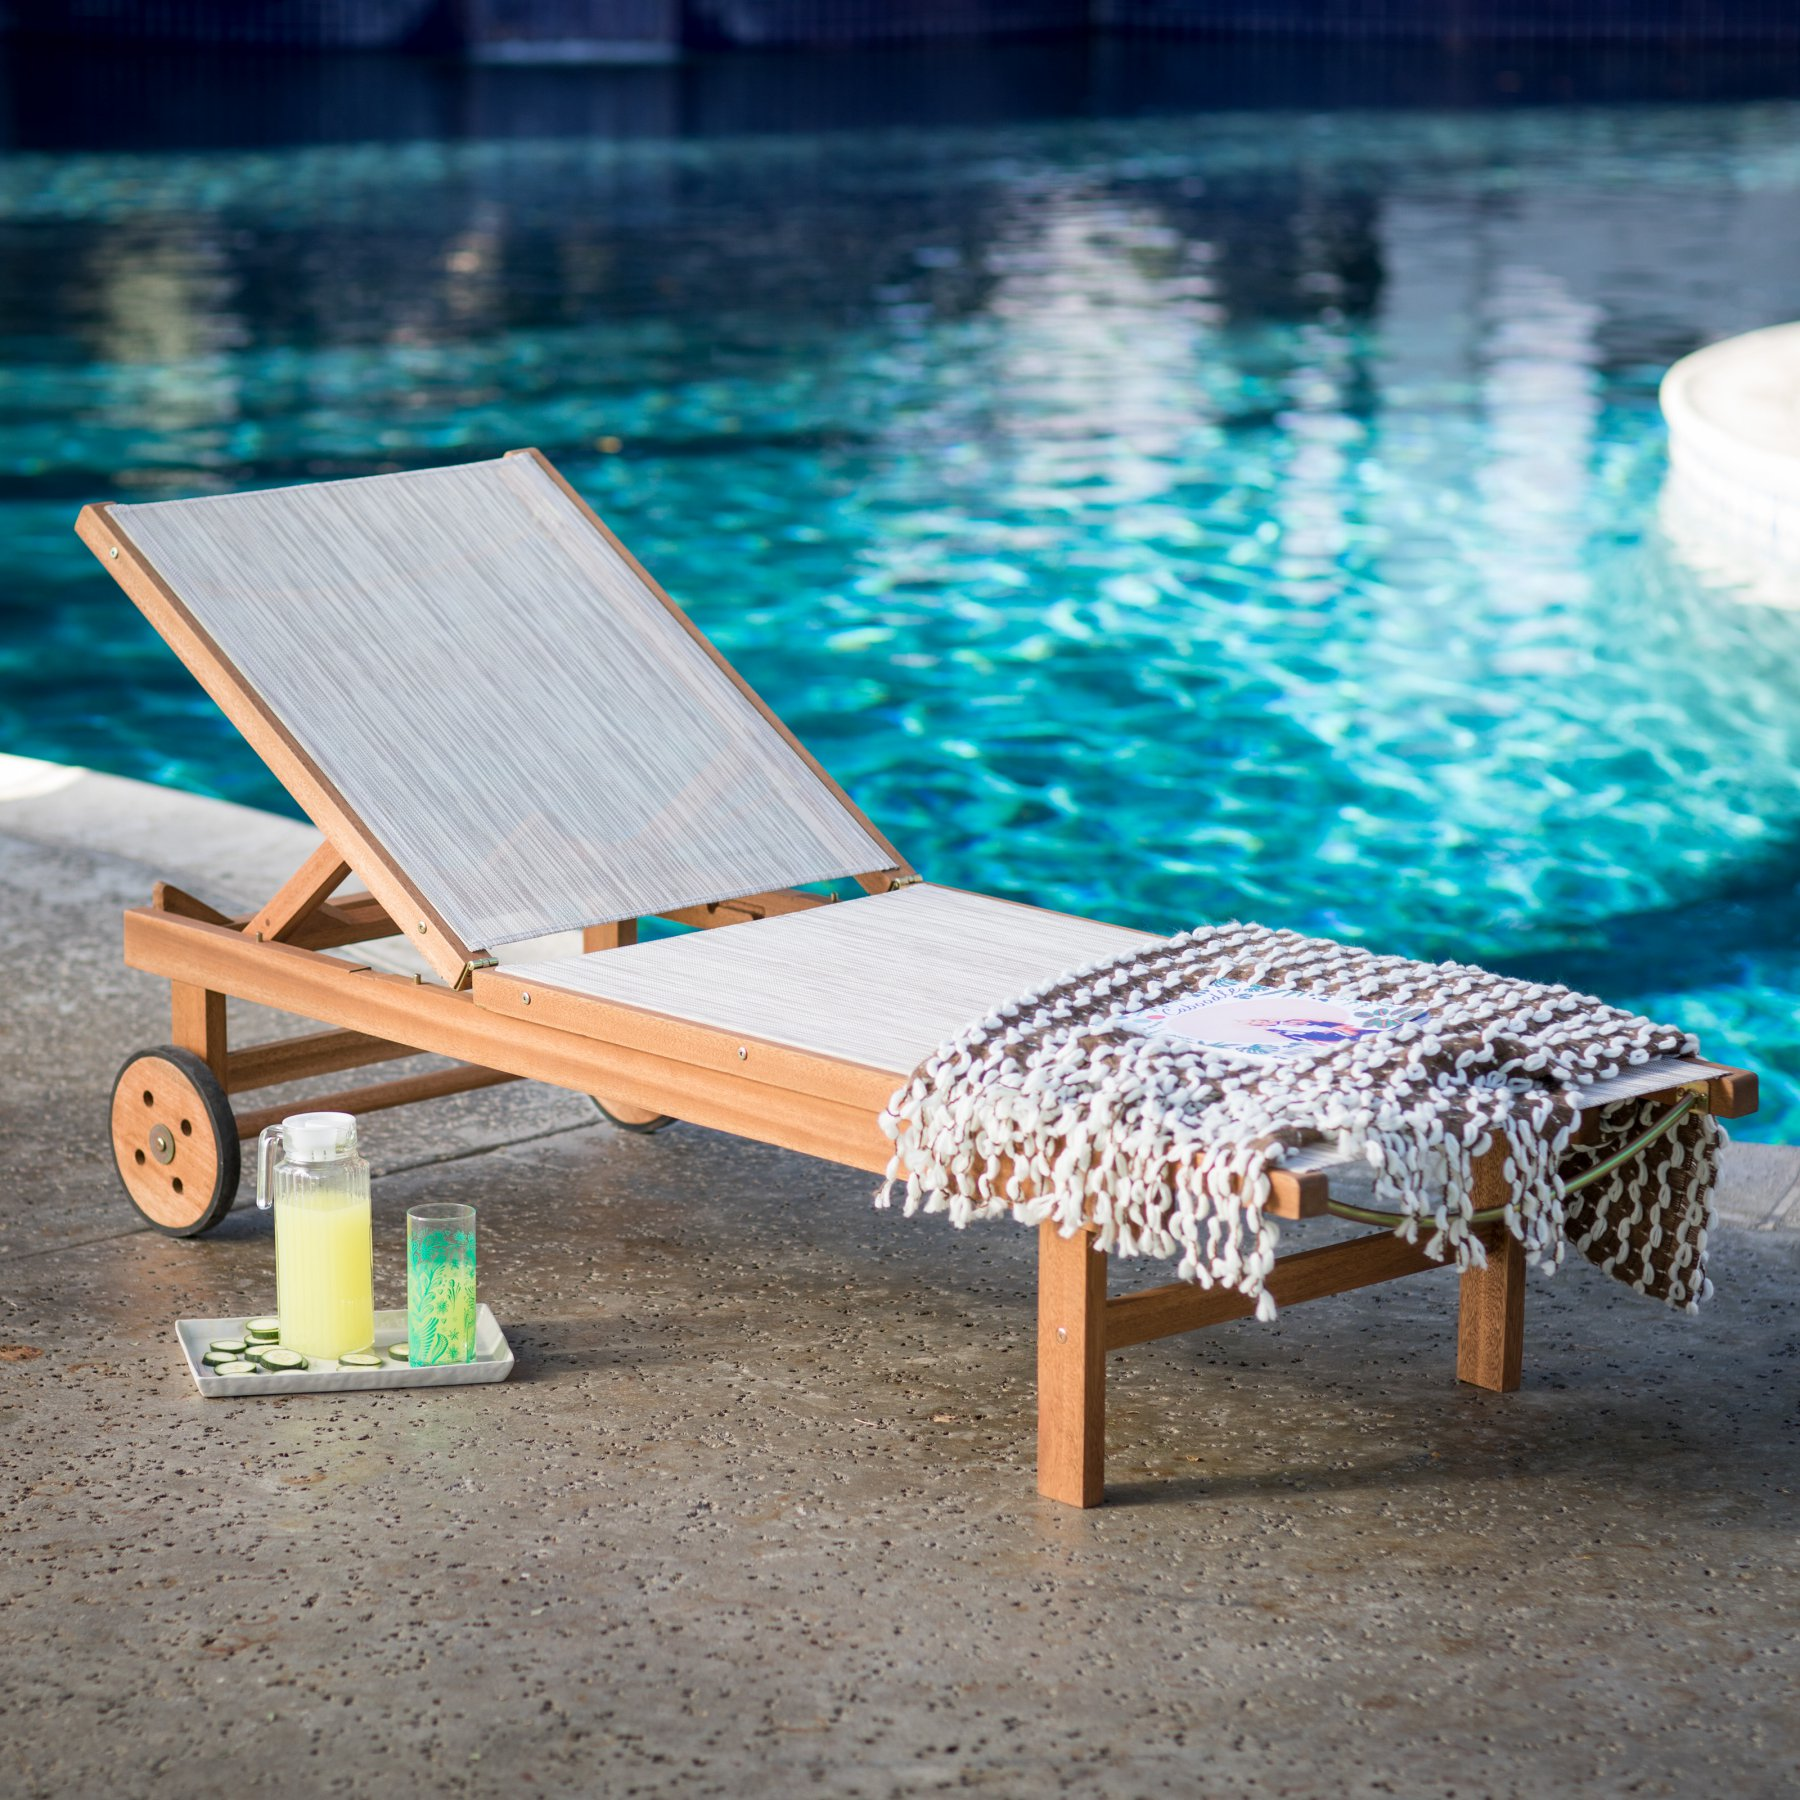 Belham Living Boca Vista Outdoor Wood Sling Chaise Lounge